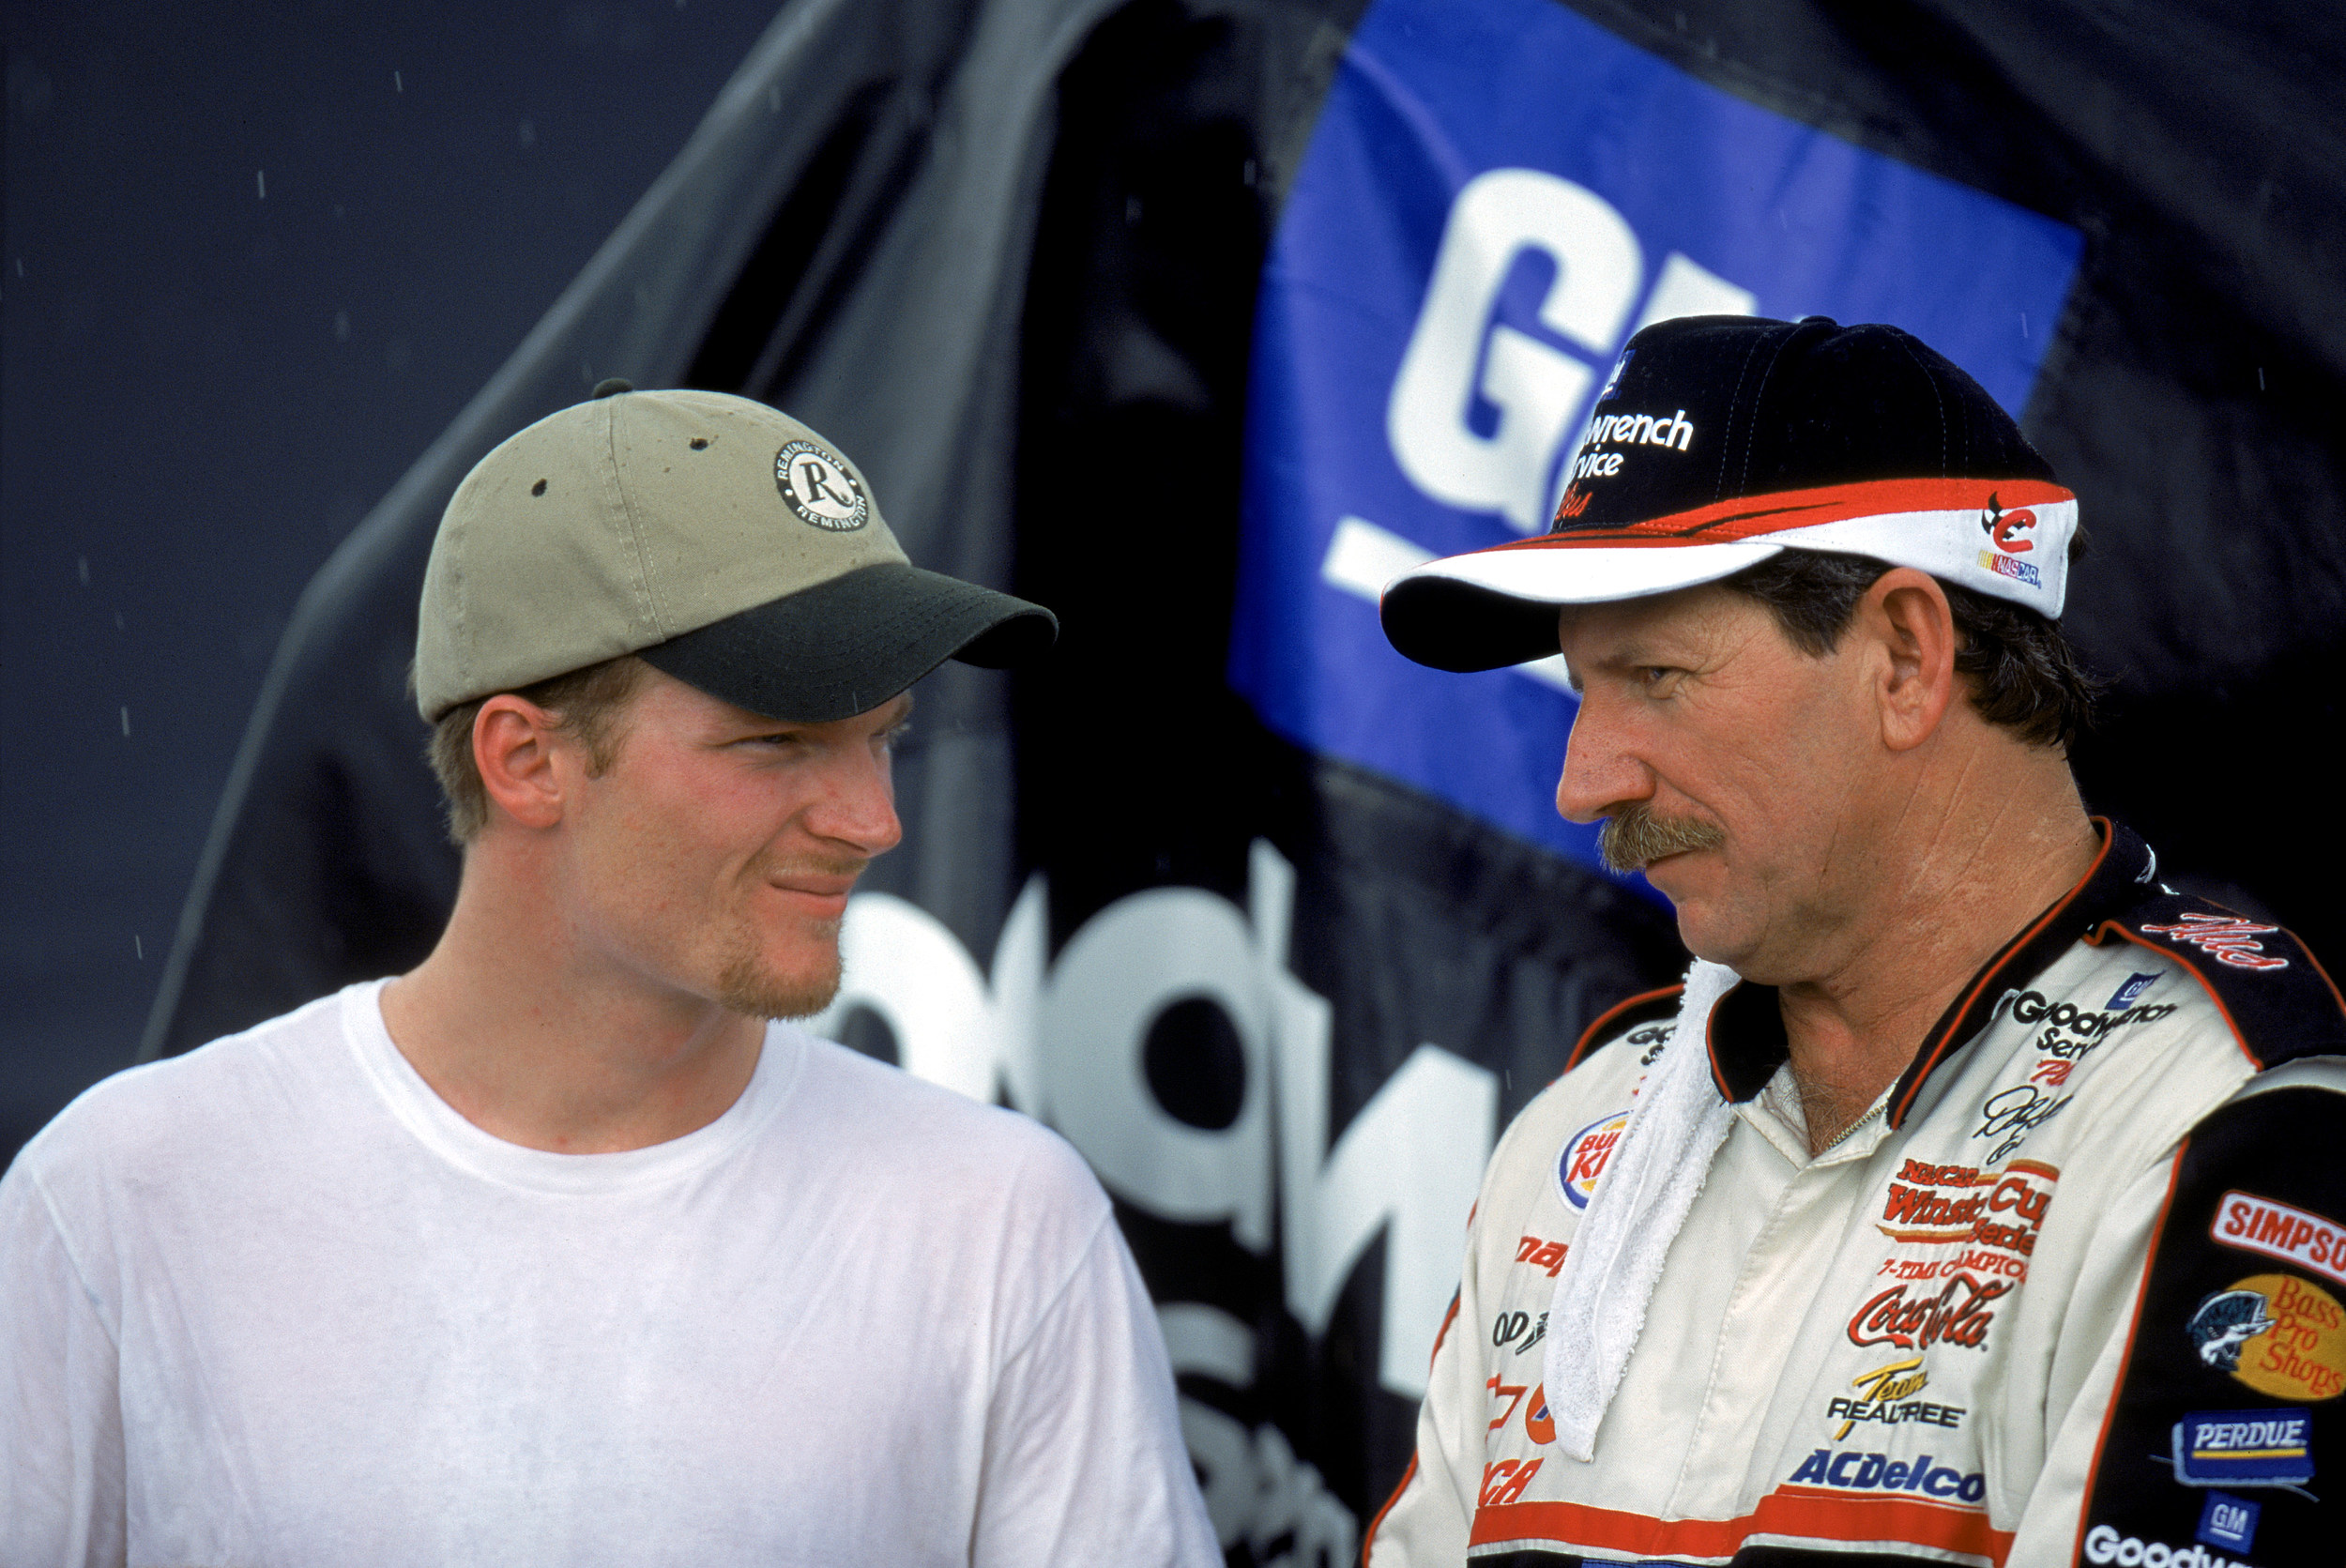 Earnhardts Jr. and Sr. pose for a photograph